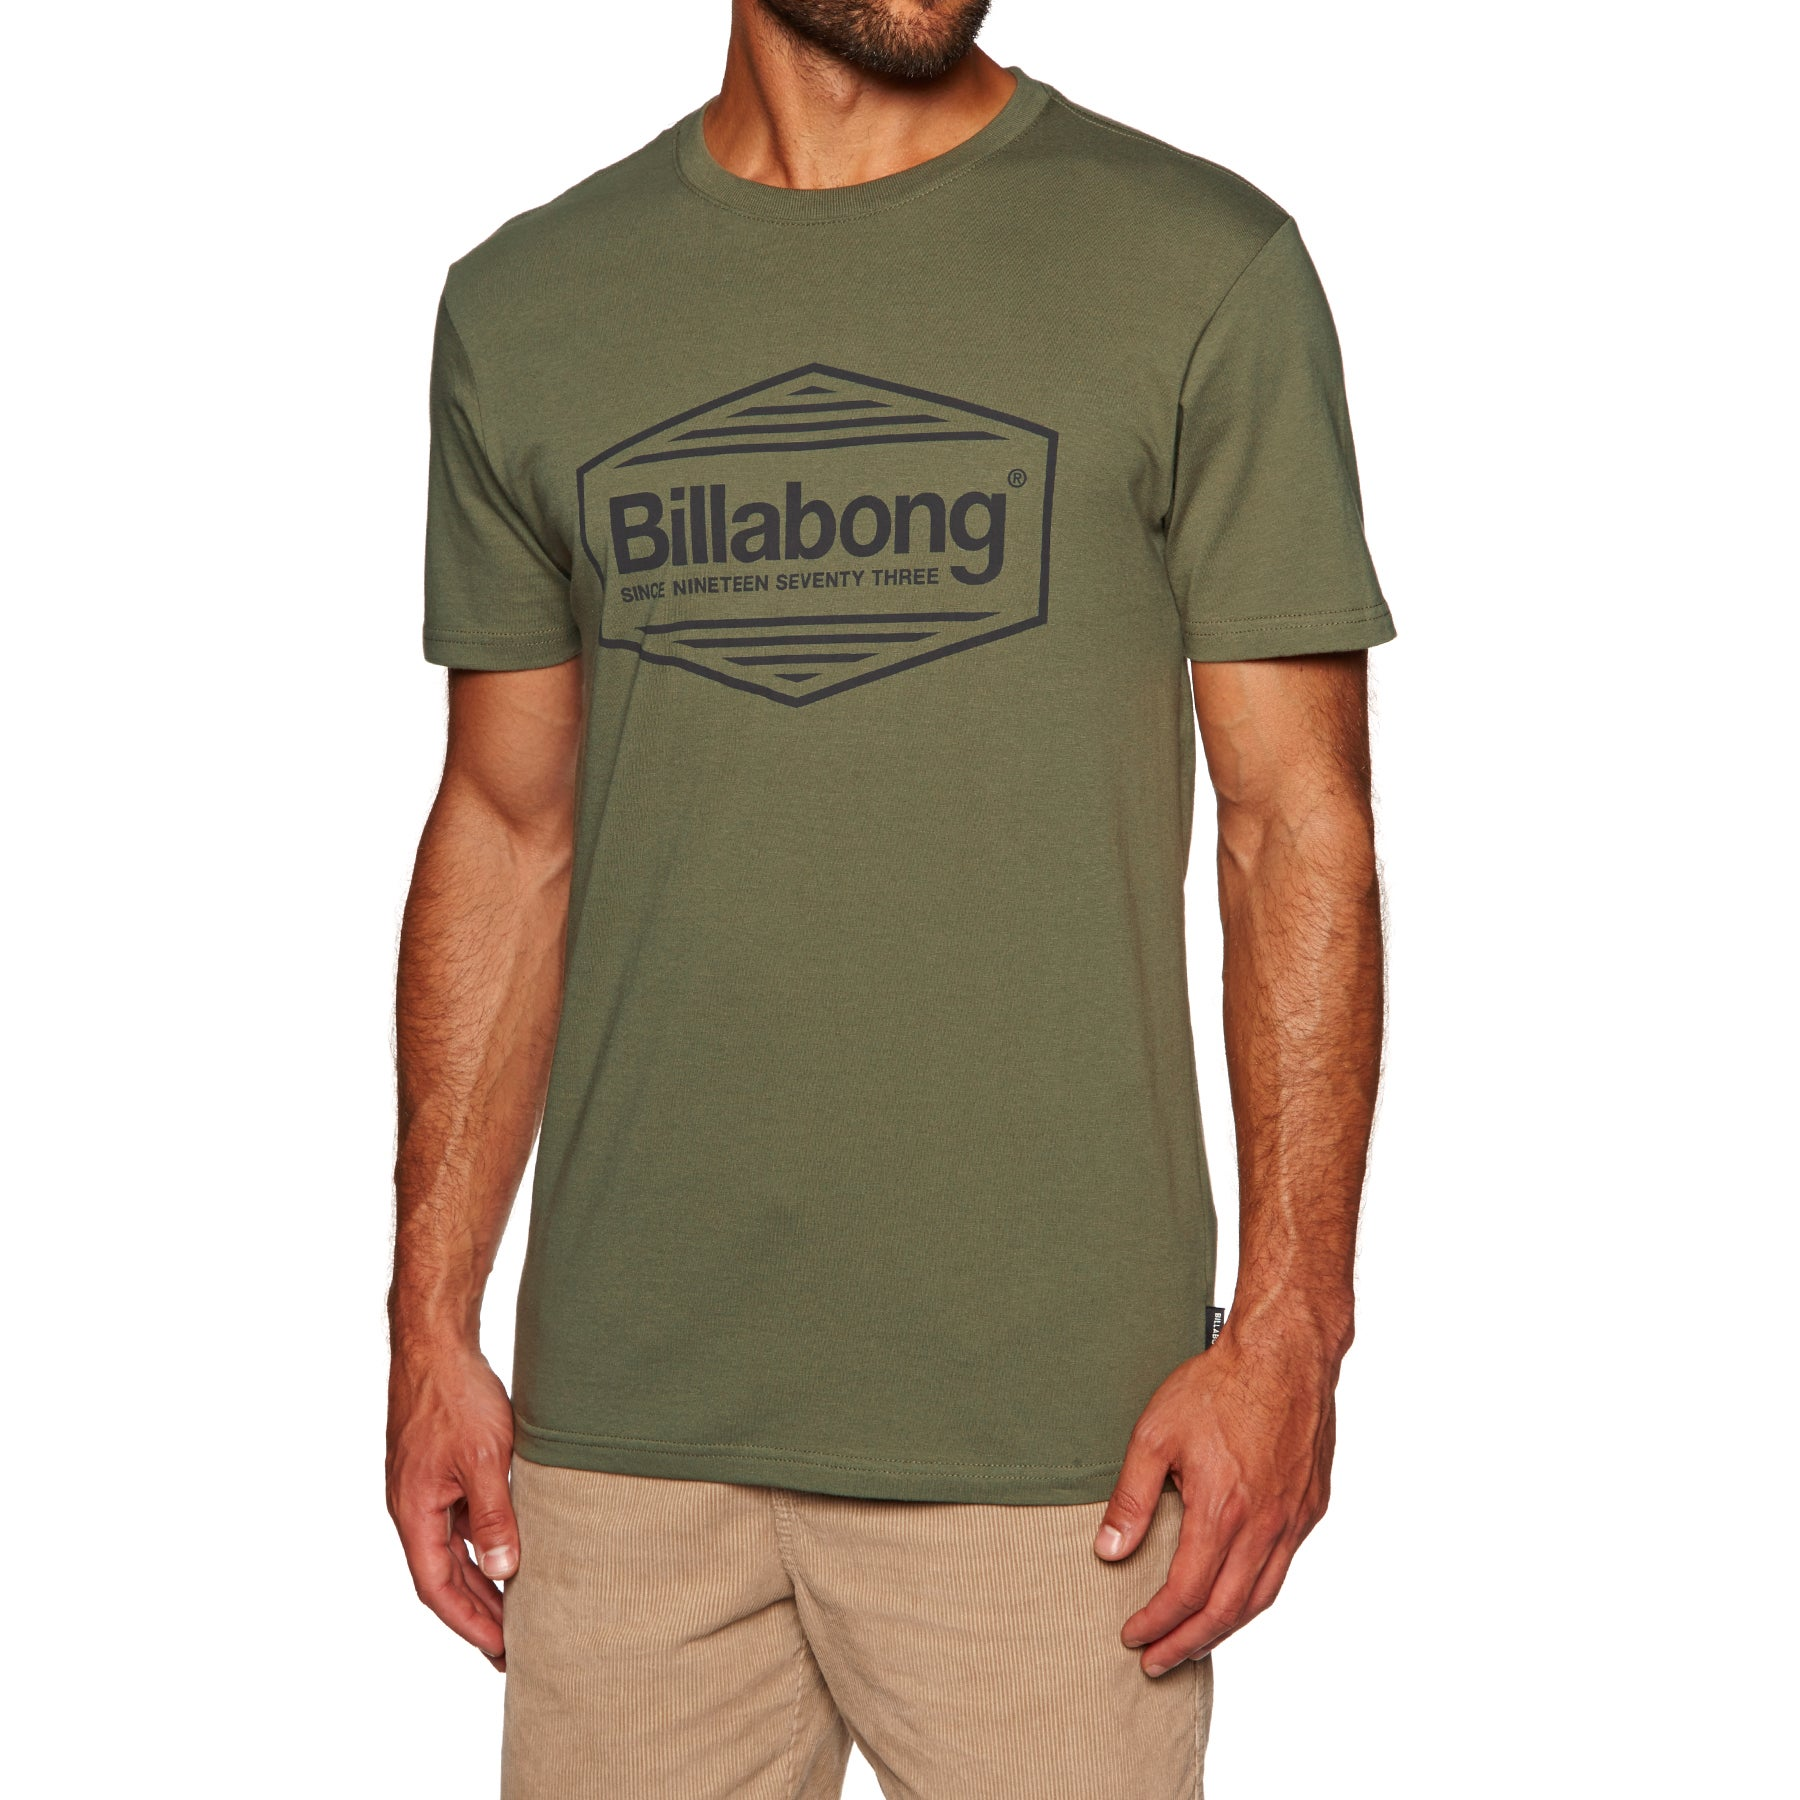 Billabong Pacific Short Sleeve T-Shirt - Lt Military